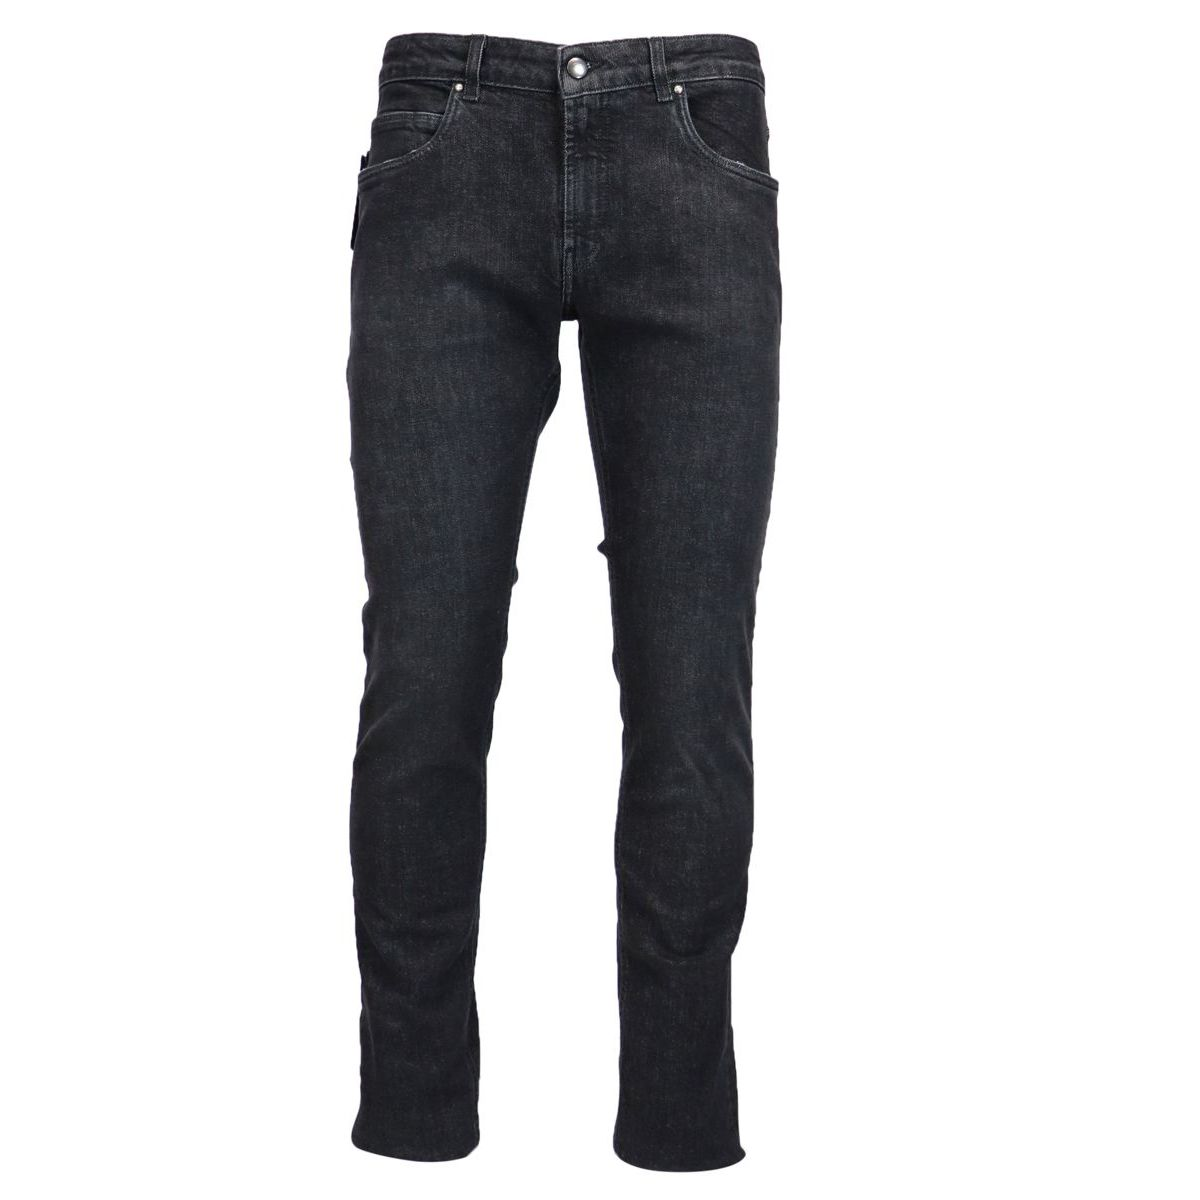 5-pocket stretch denim jeans Black Fay